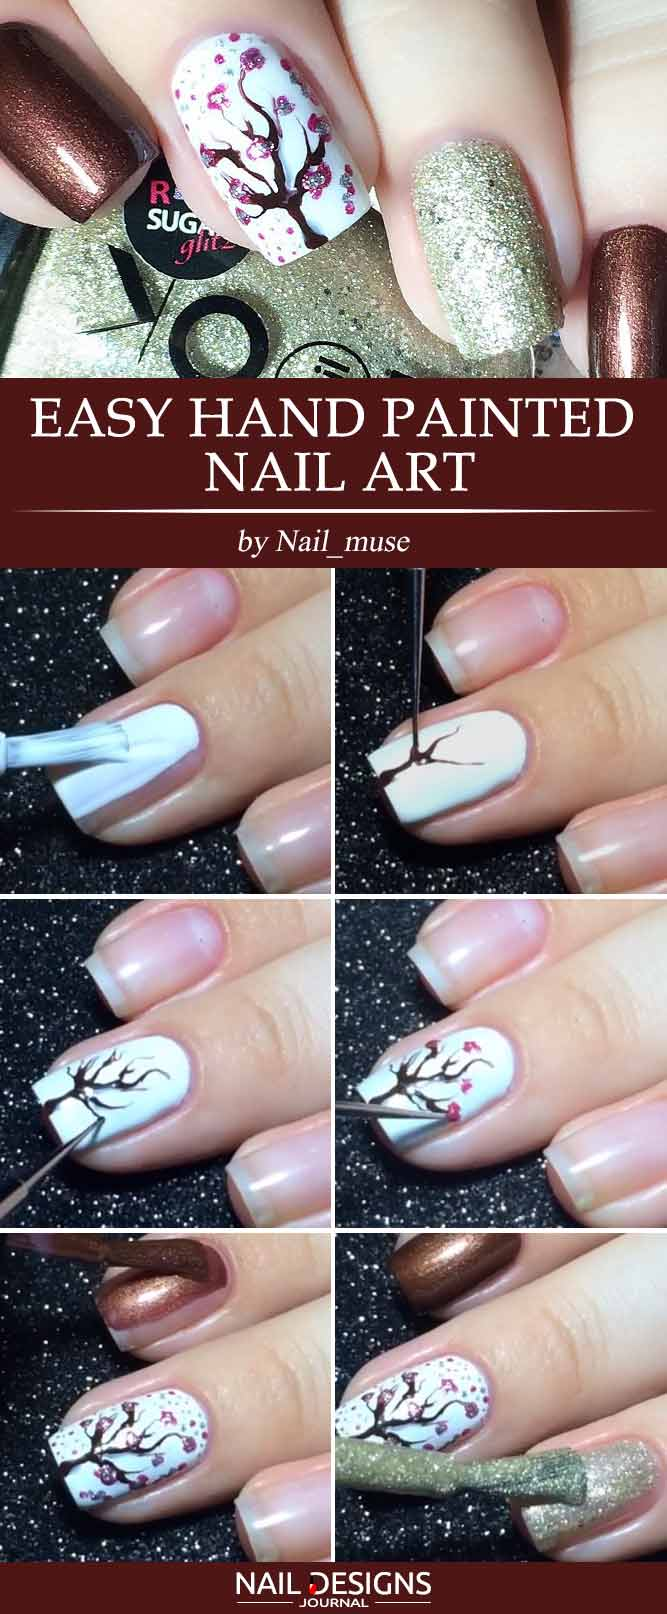 15 super easy nail designs diy tutorials crazyforus prinsesfo Image collections